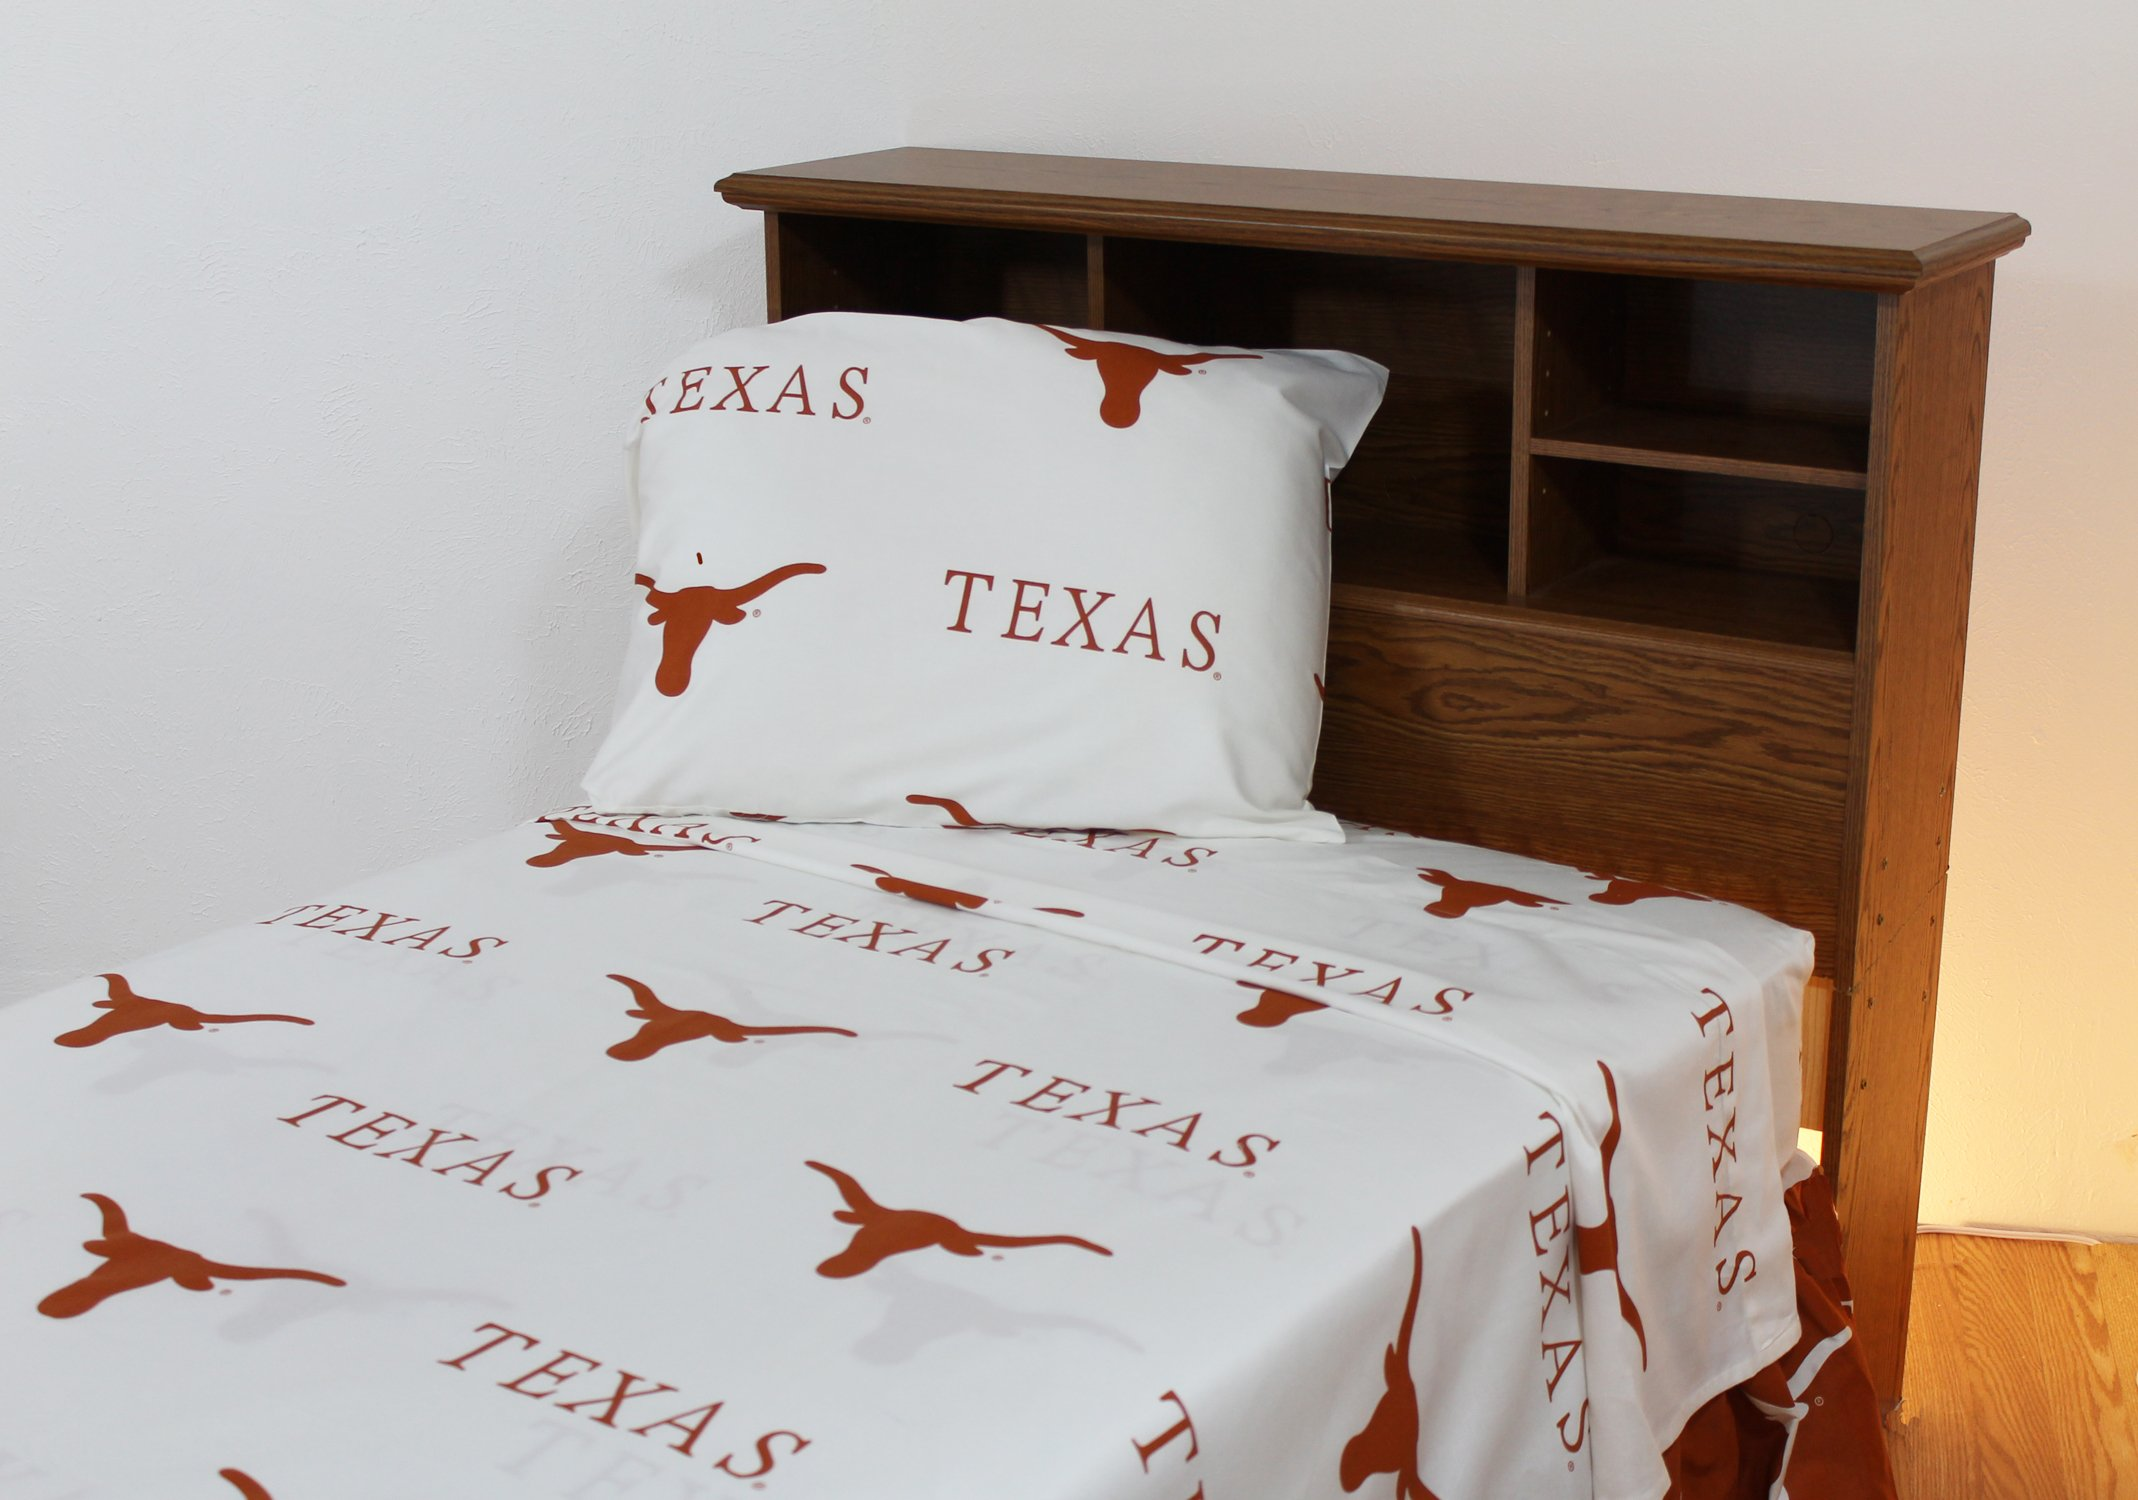 College Covers Texas Longhorns Printed Sheet Set - Full - White by College Covers